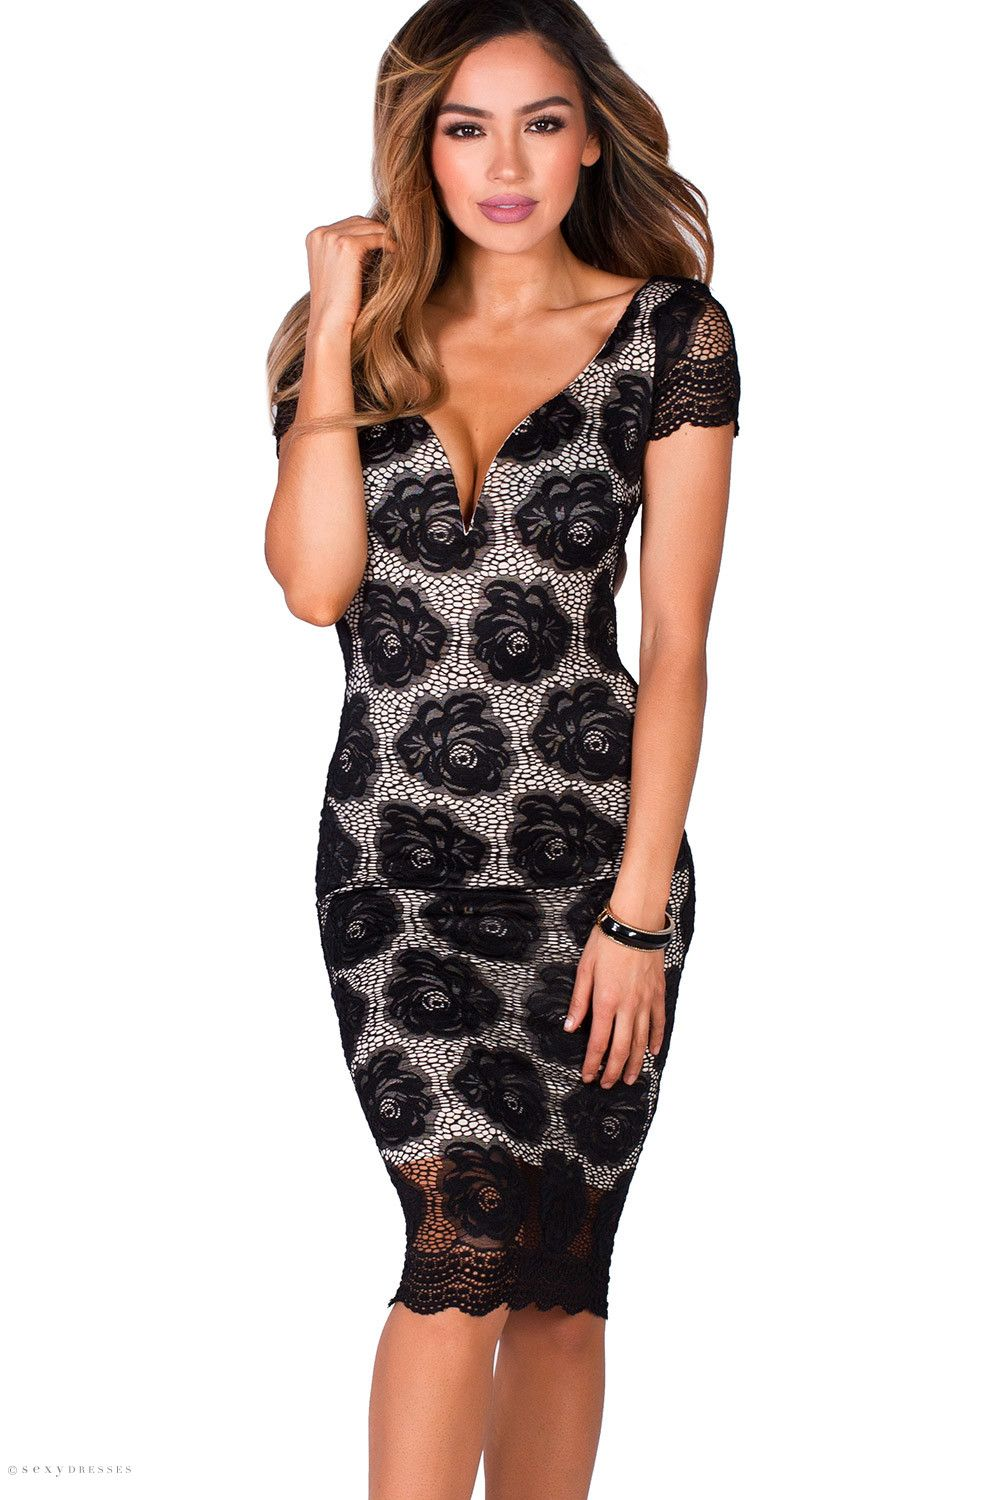 96a87ad35d Midi Length Bodycon Short Sleeve Lace Black & Nude Cocktail Party Dress